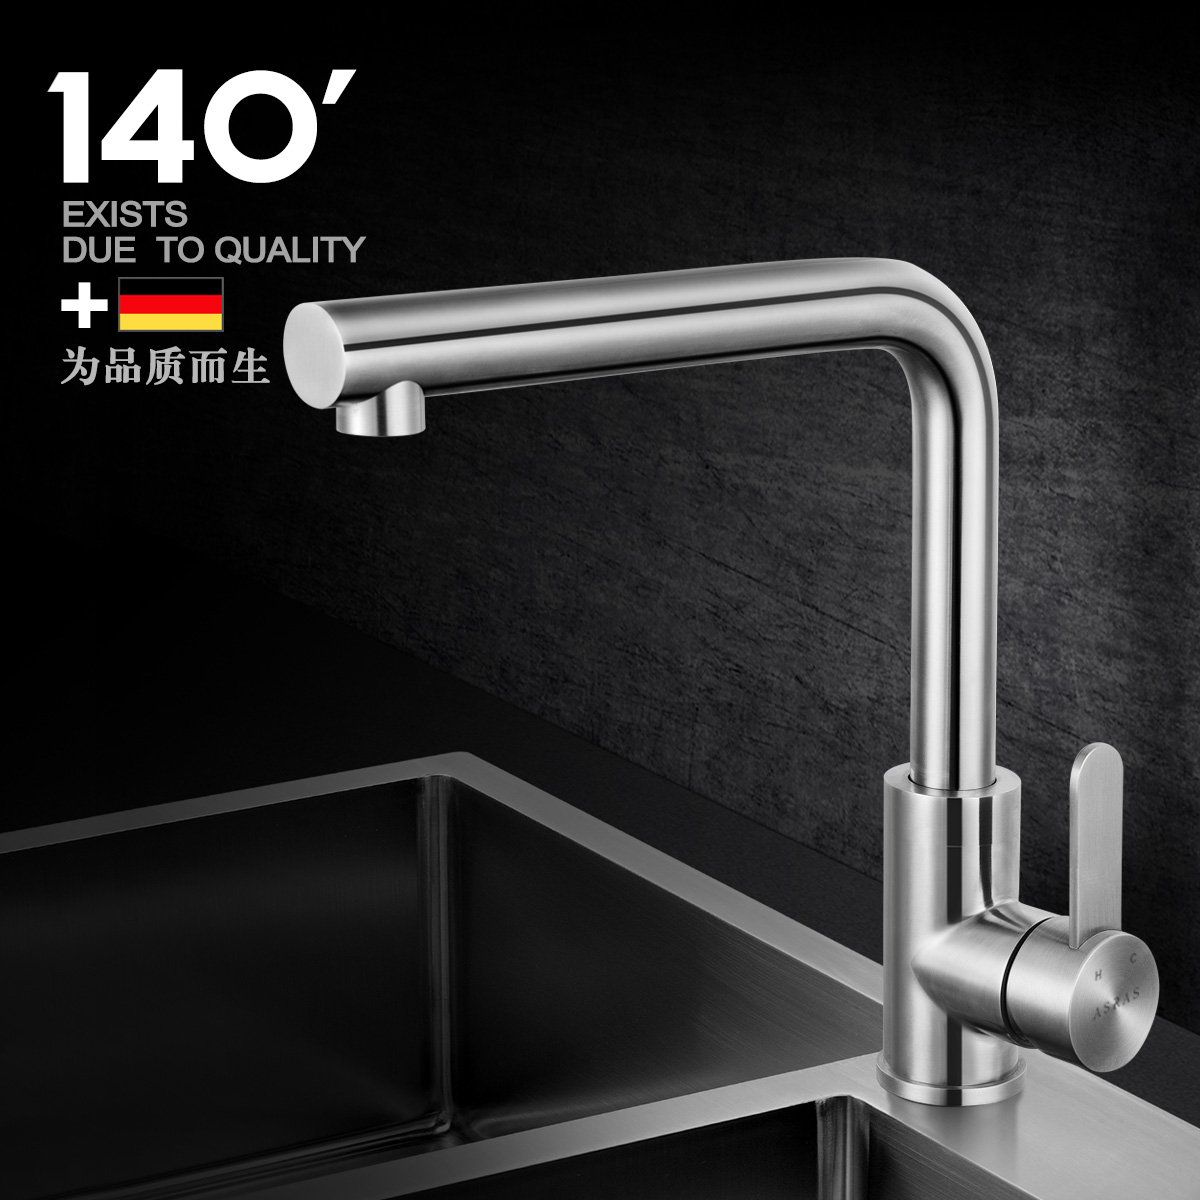 Assas unleaded 304 stainless steel kitchen sink full of hot and cold taps universal rotation vegetables basin sink